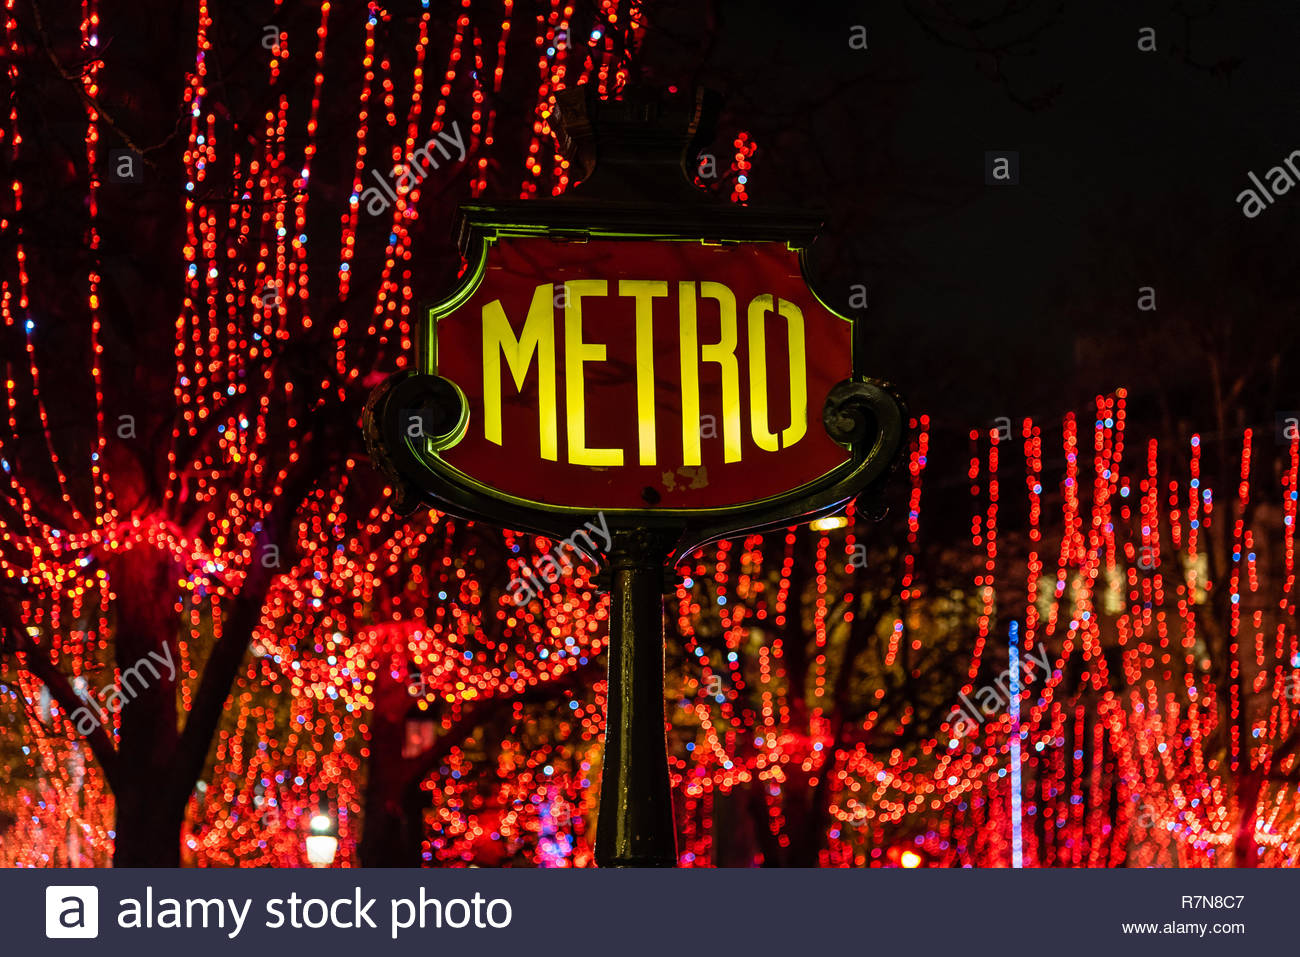 the metro sign and the christmas lights of champs elysee paris france R7N8C7